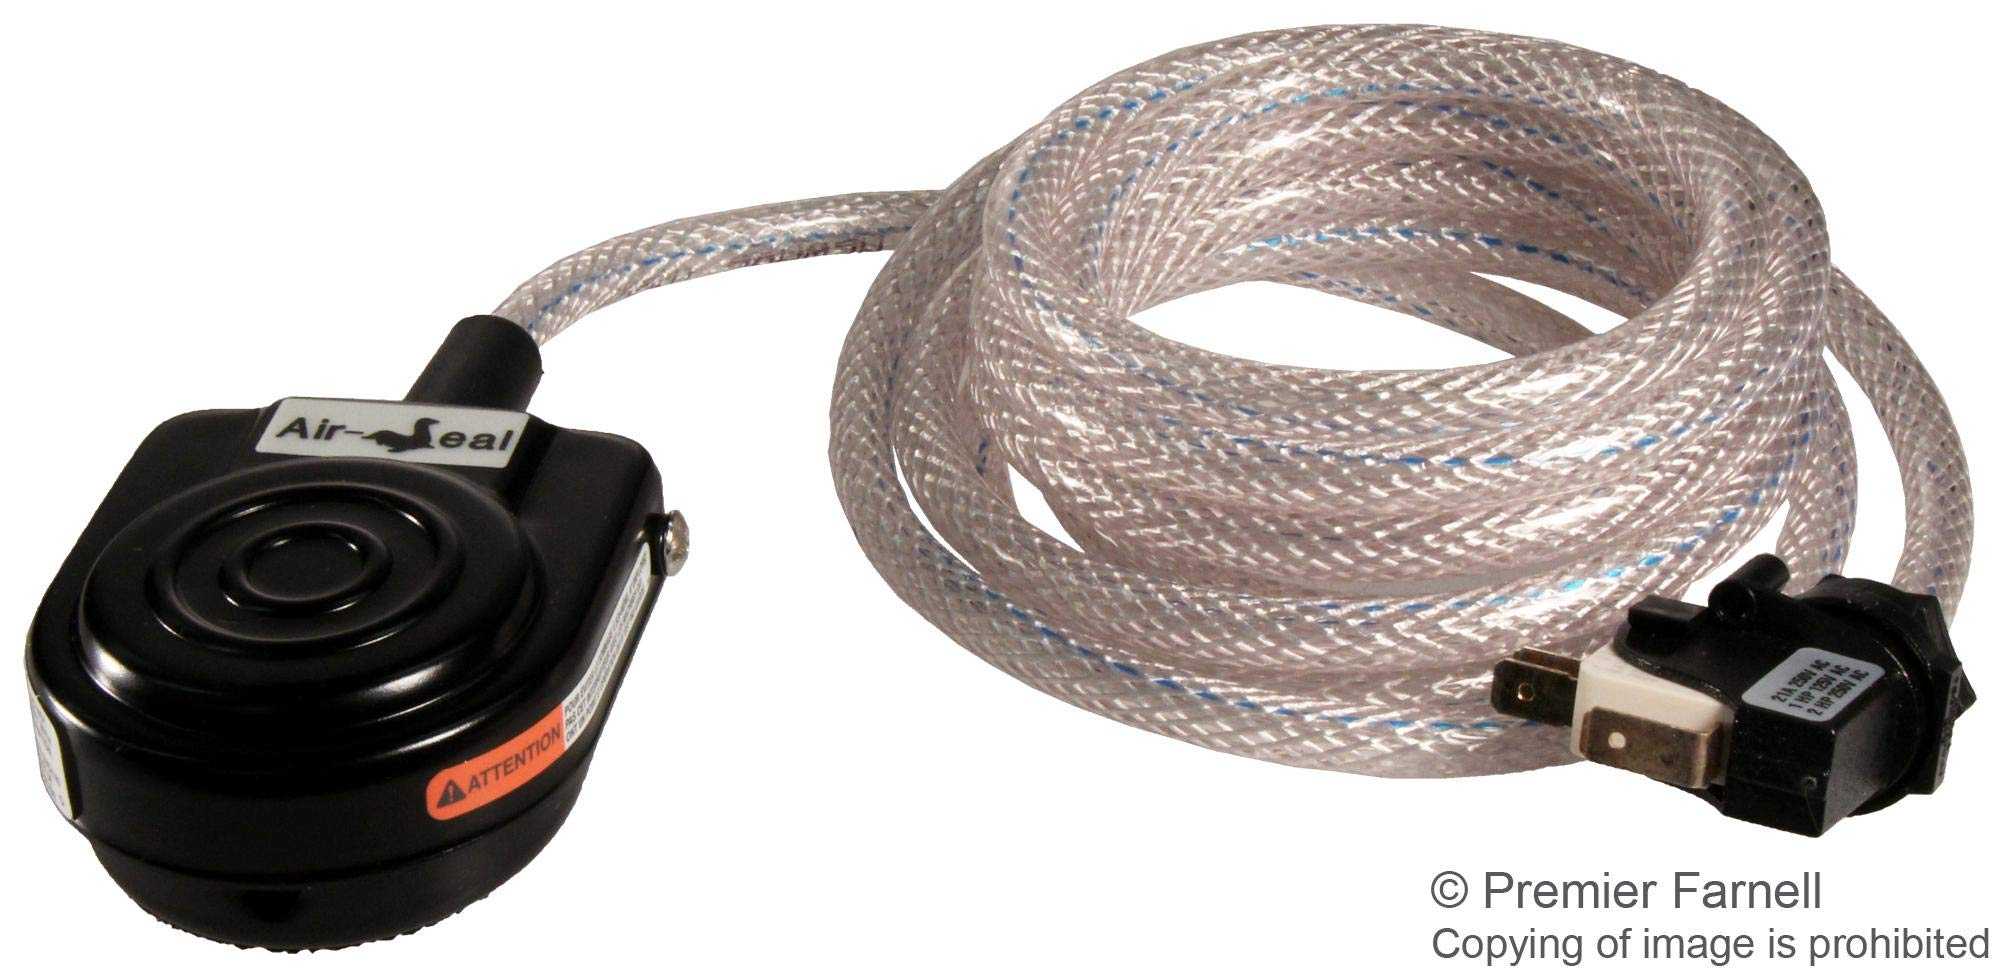 41SH12 - Foot Operated Switch, SPDT, (On), 20 A, 250 V, 69.6 mm (41SH12)